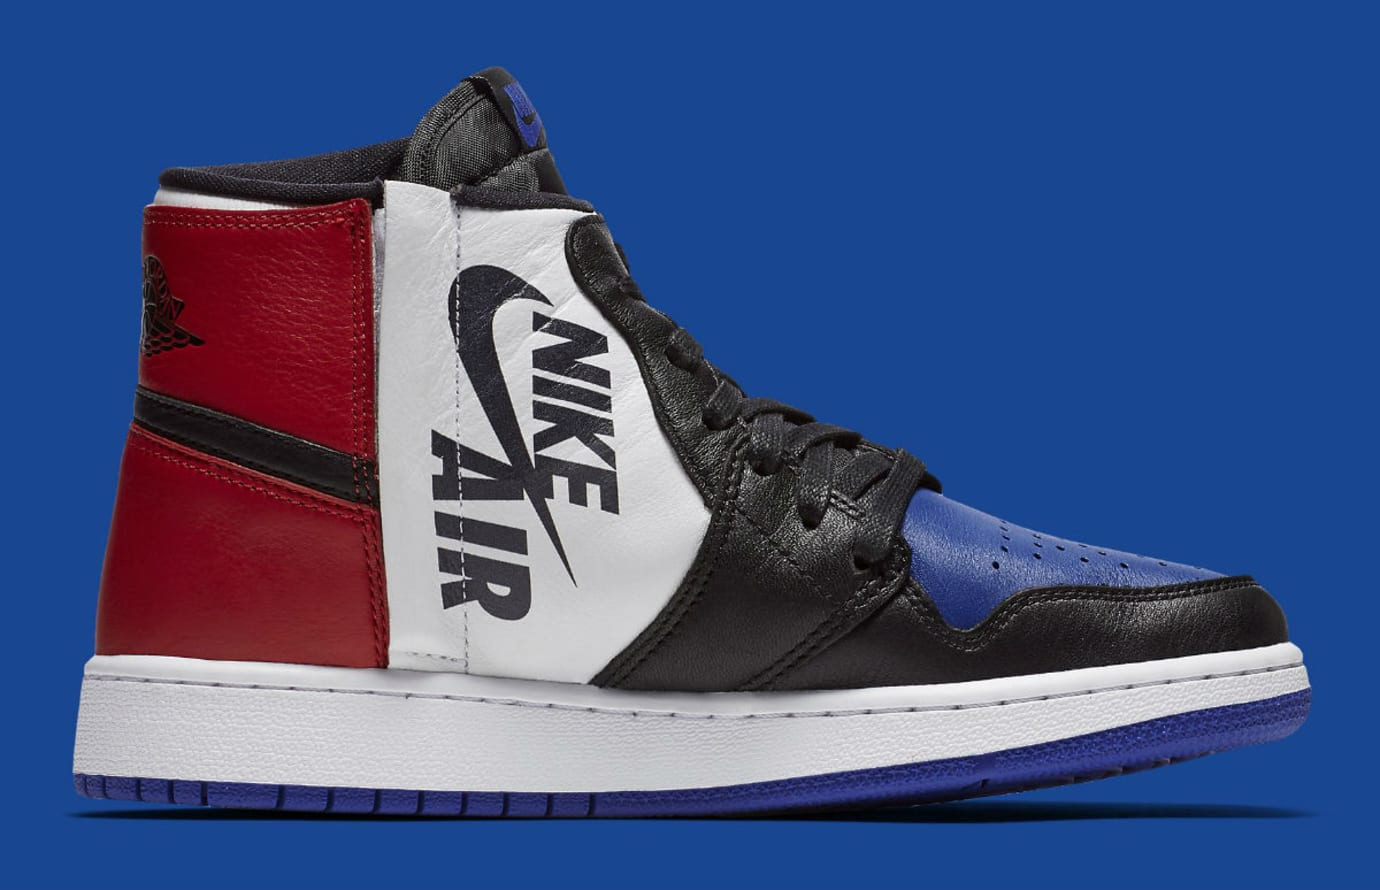 Air Jordan 1 Rebel XX Top 3 Release Date AT4151-001 Medial